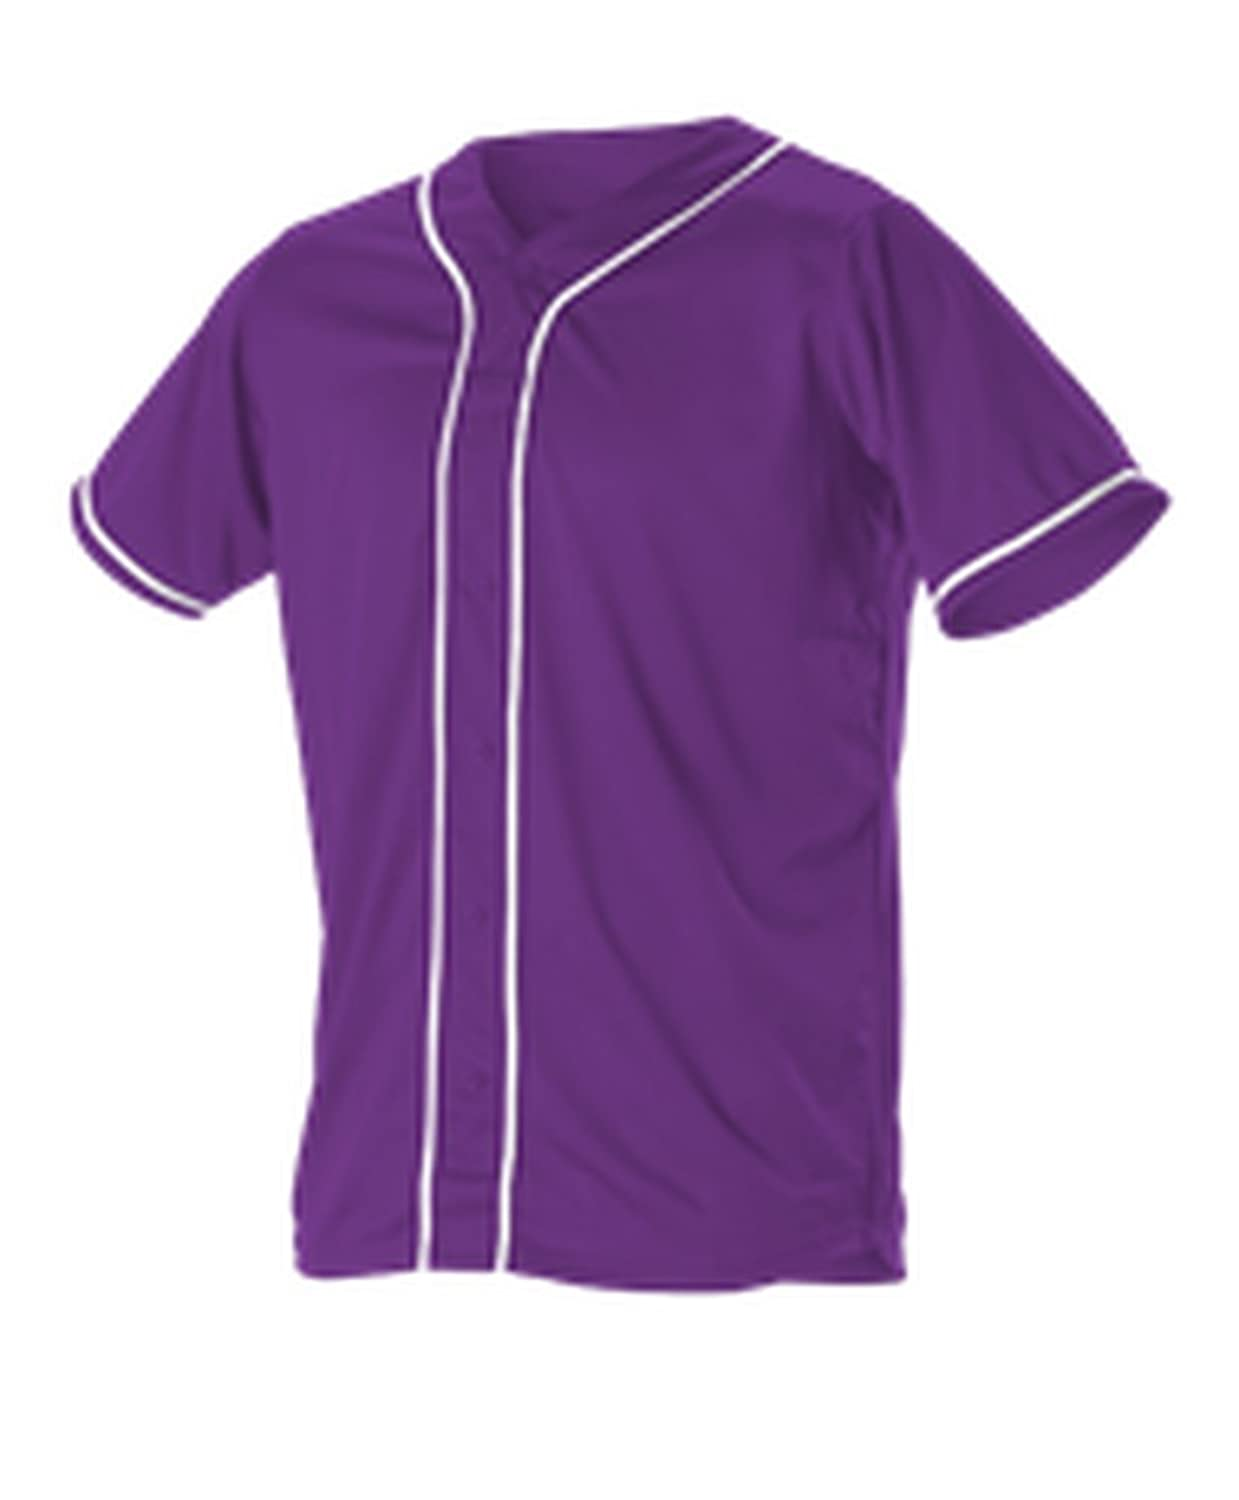 Alleson Athletic SHIRT ボーイズ B075NRF4ZGPurple, White Large